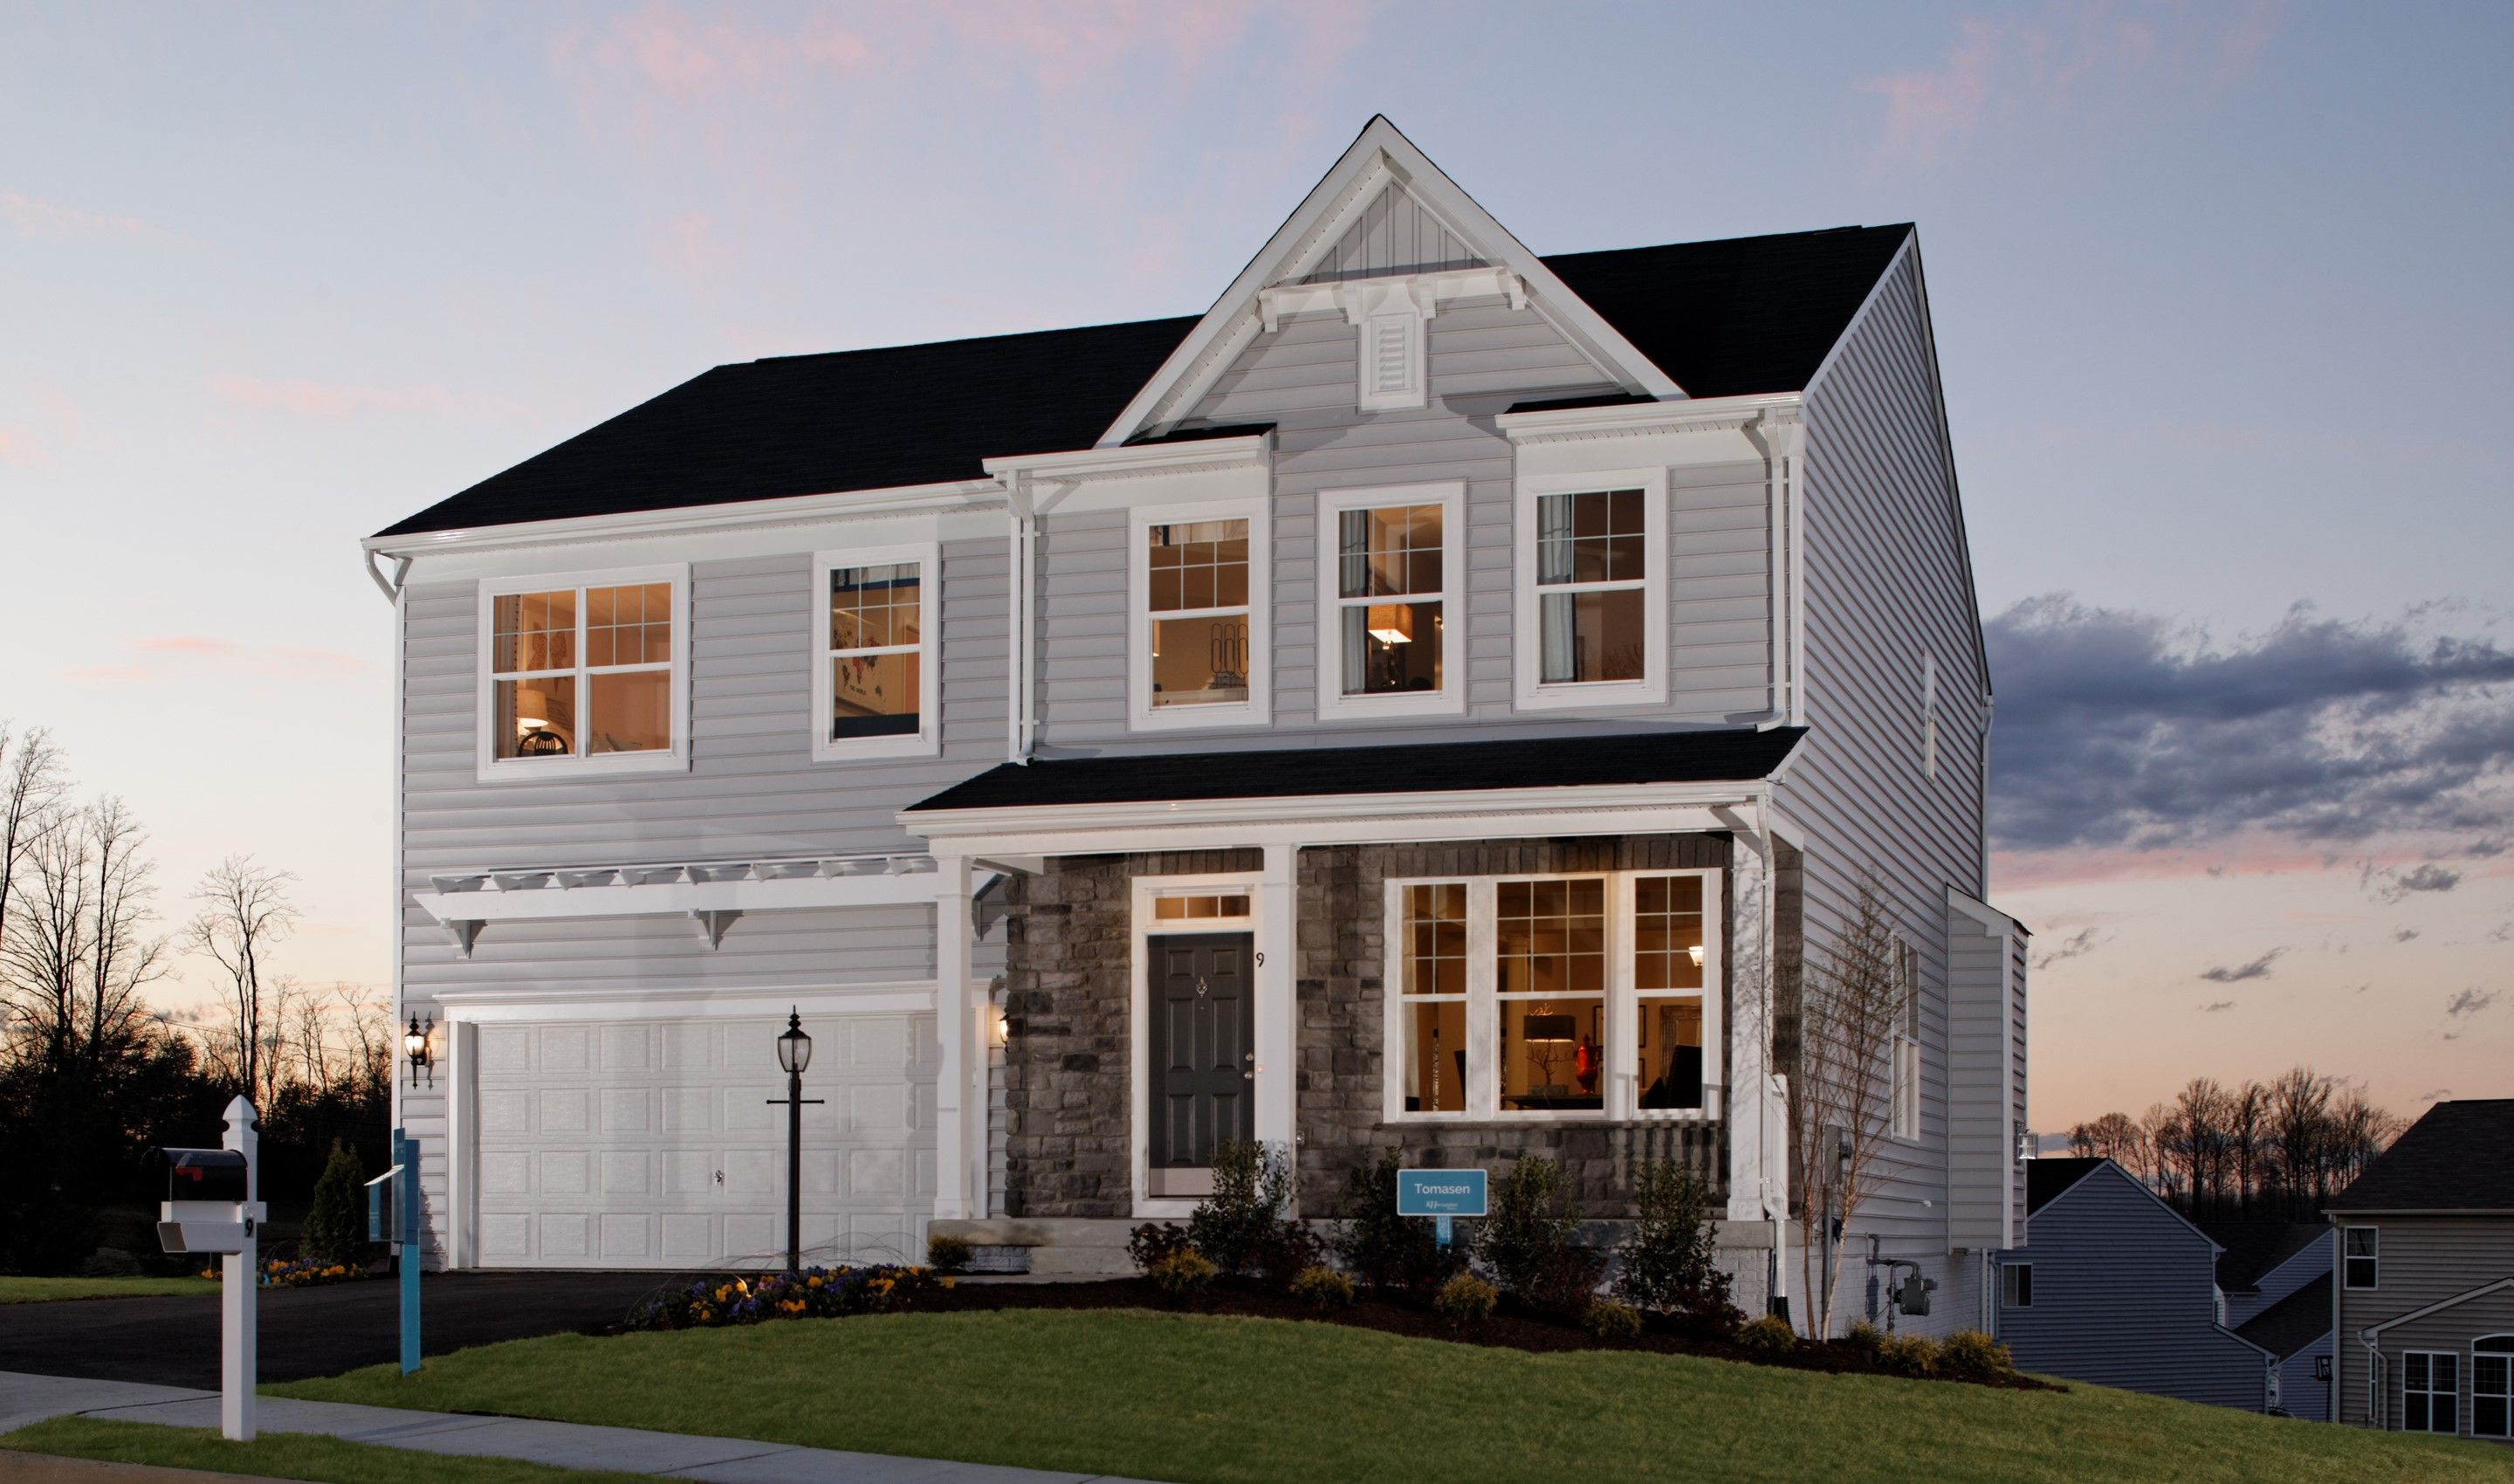 Single Family for Active at Alaska - South Collection 3 Perth Drive, Homesite 549 Fredericksburg, Virginia 22405 United States